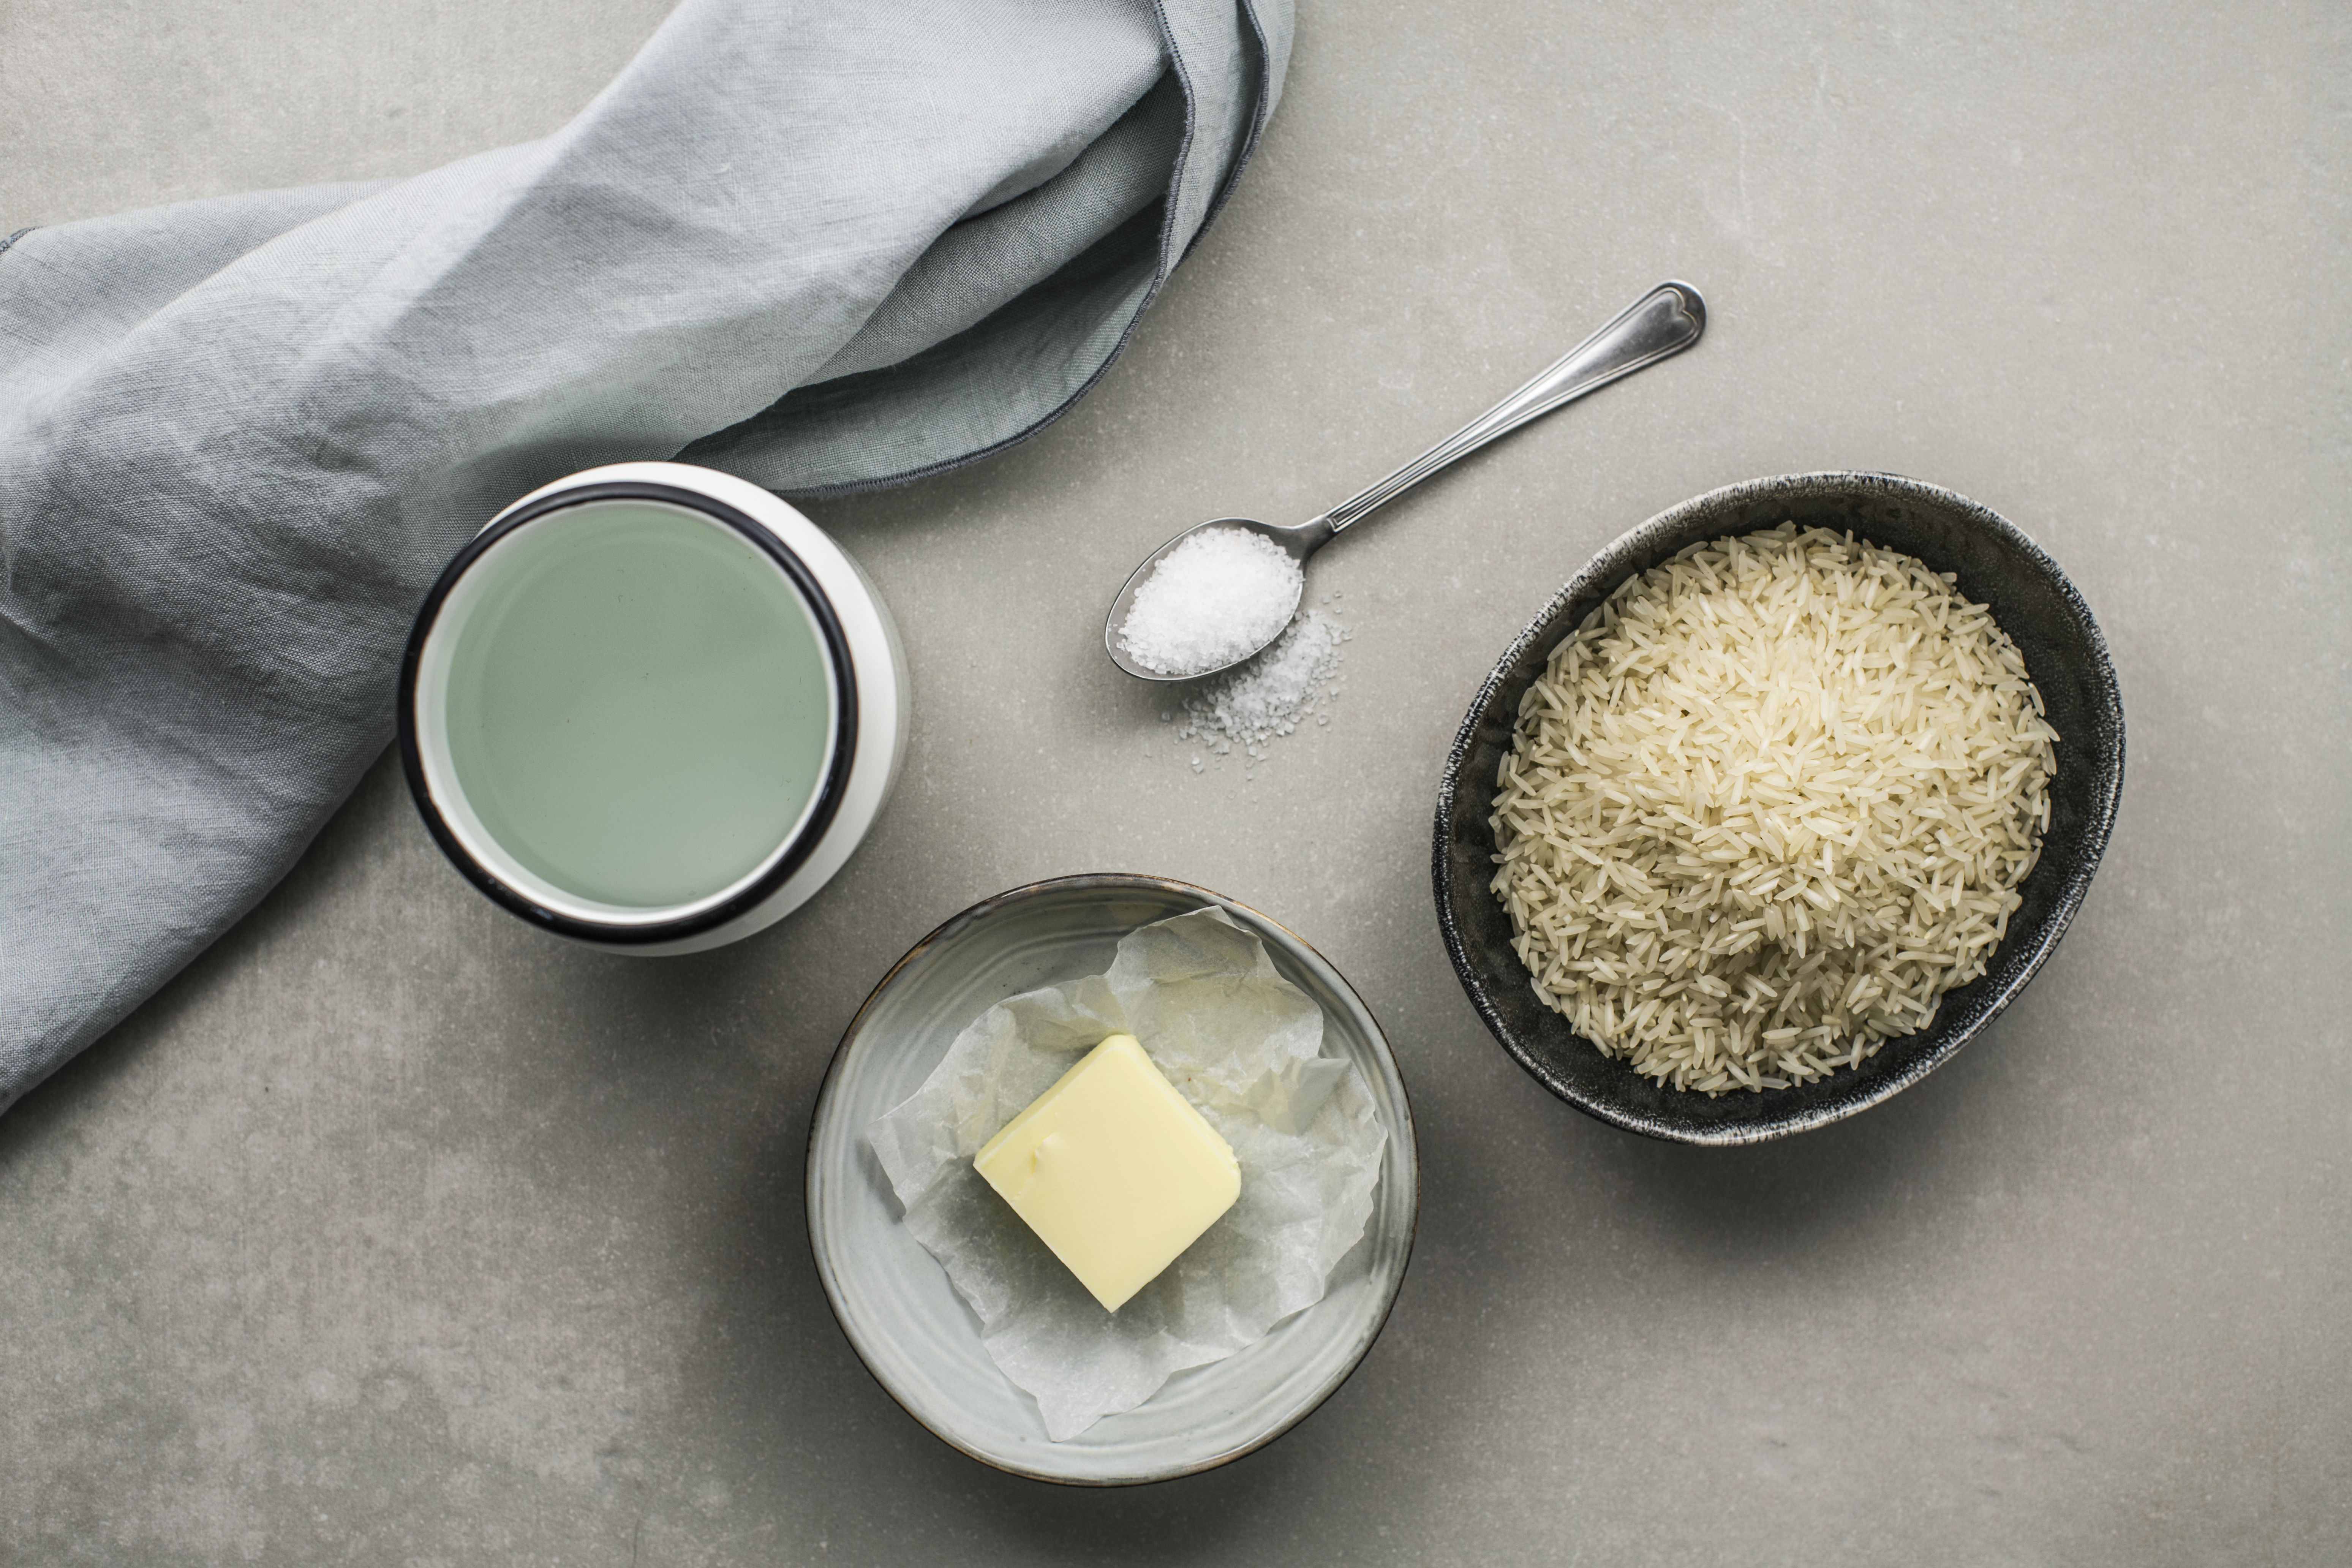 Ingredients for foolproof stovetop rice